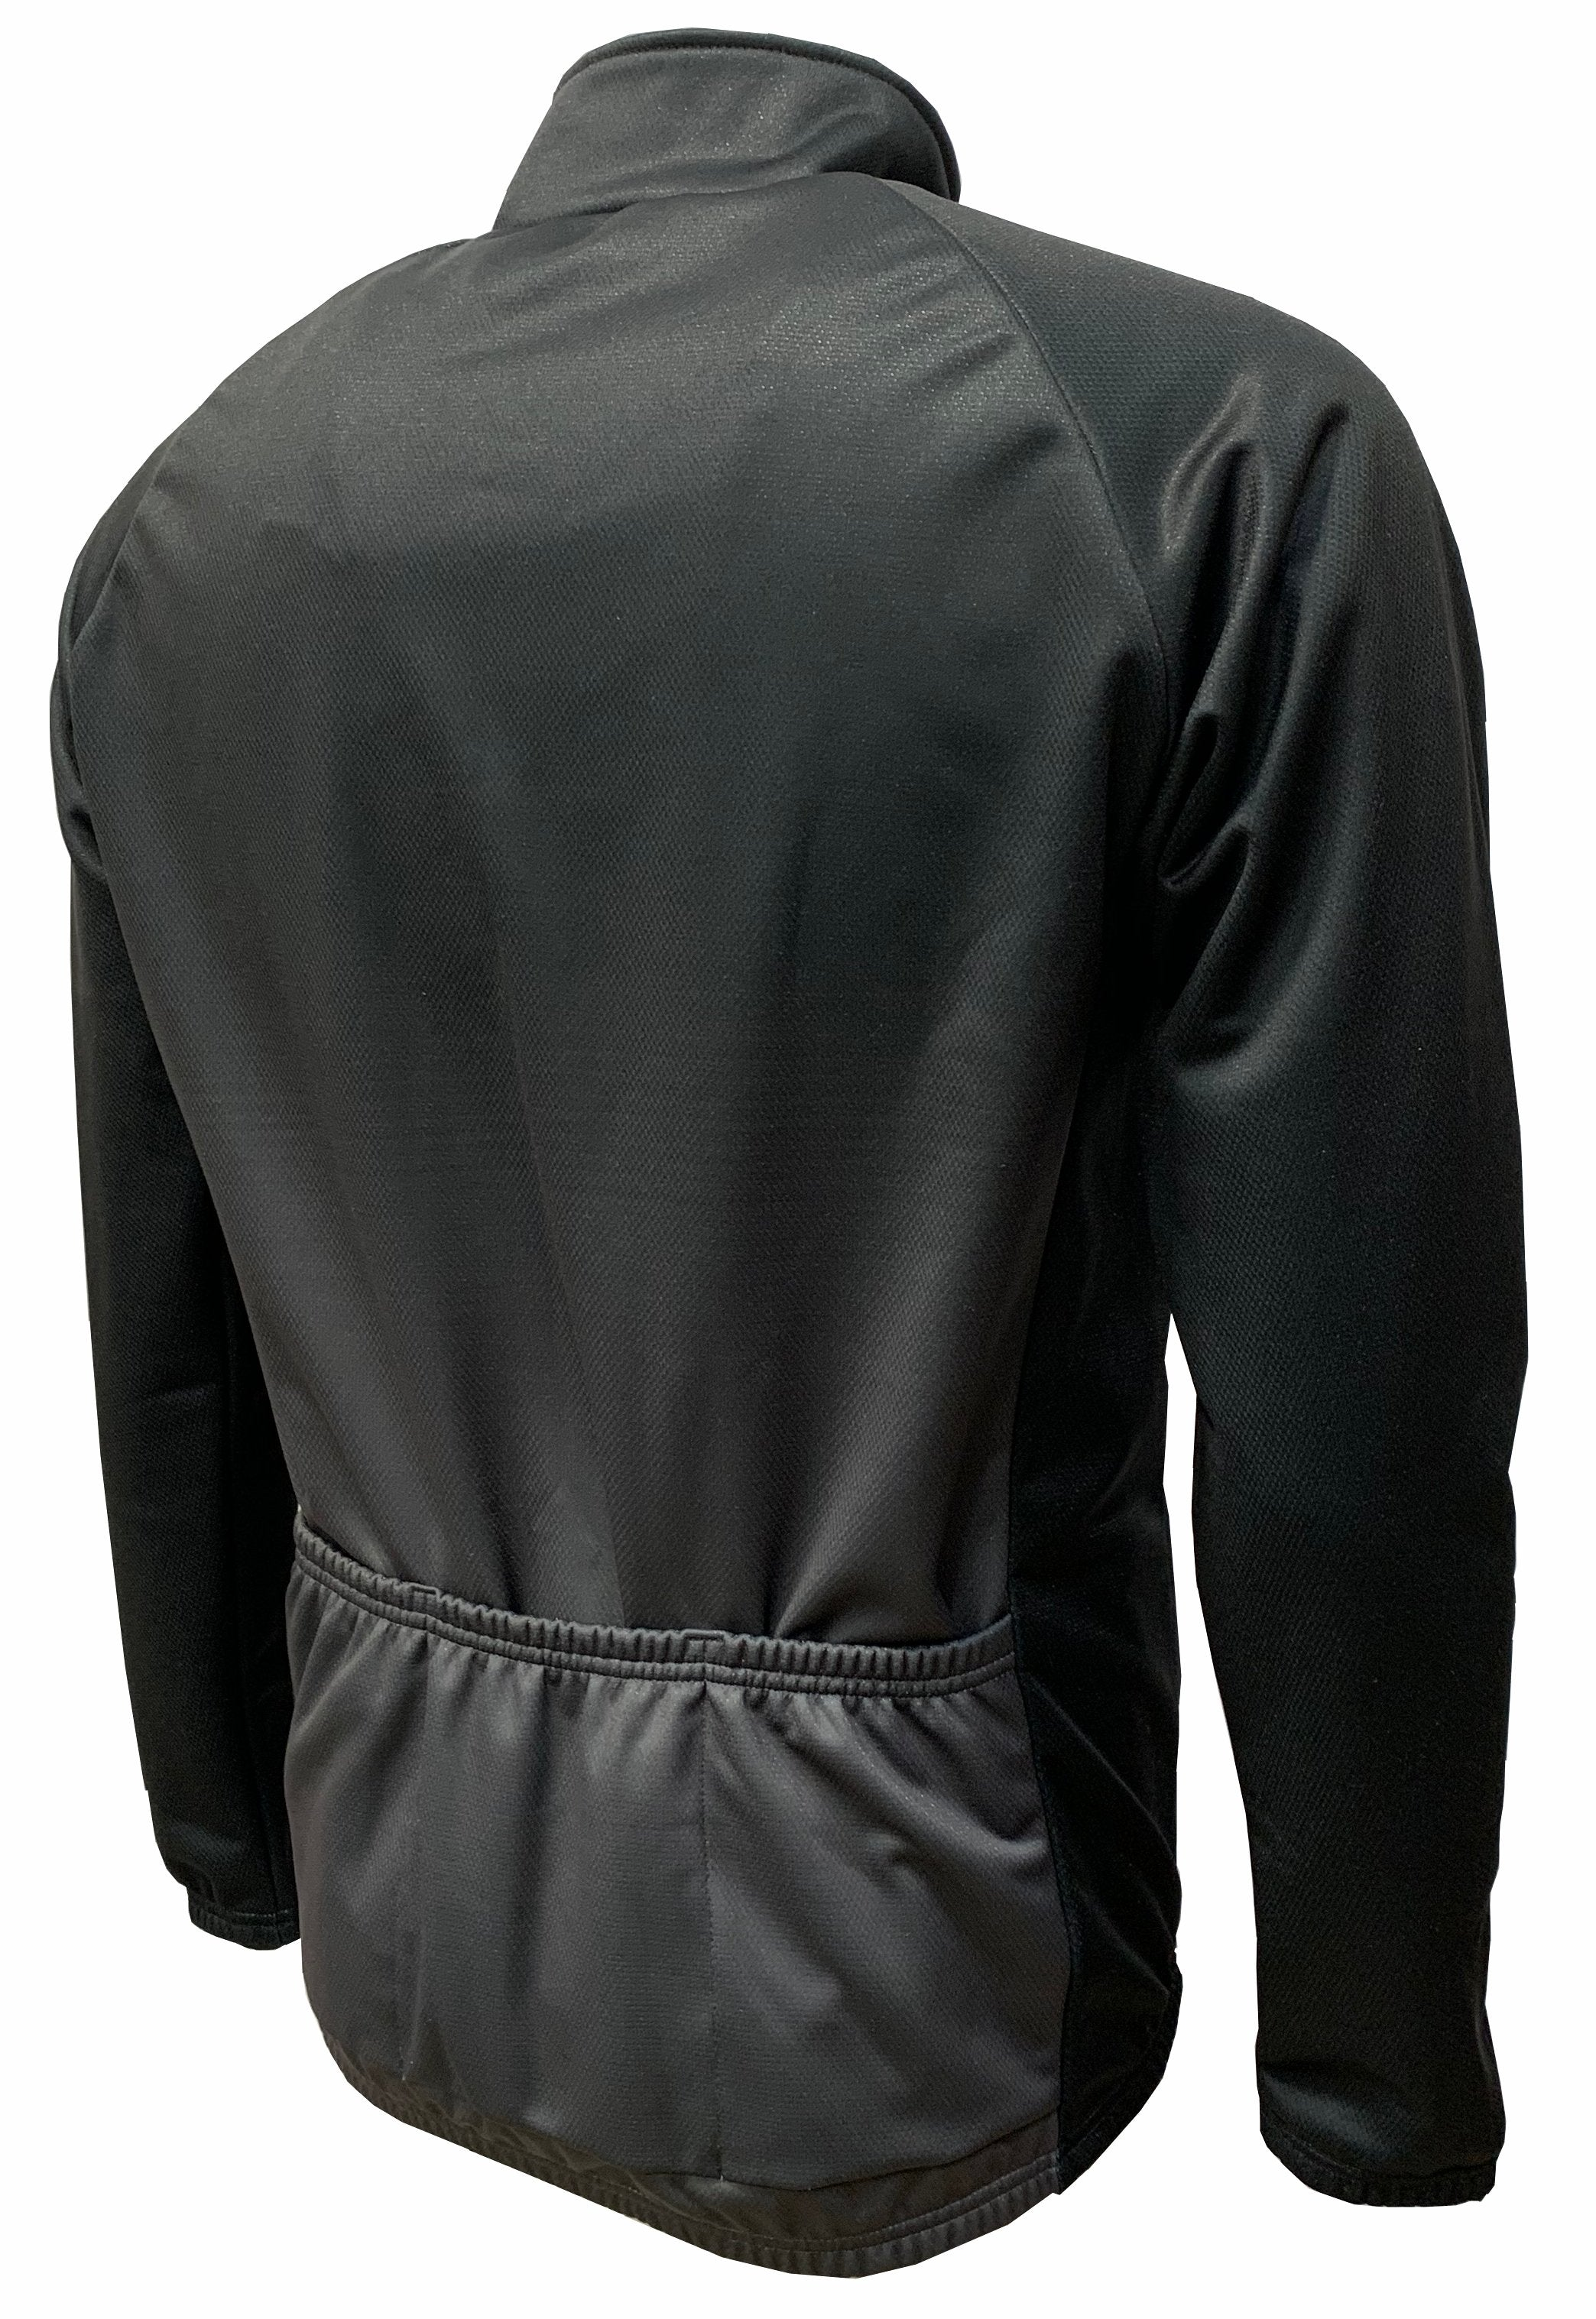 Fade Windcheeta Cycling Jacket Back